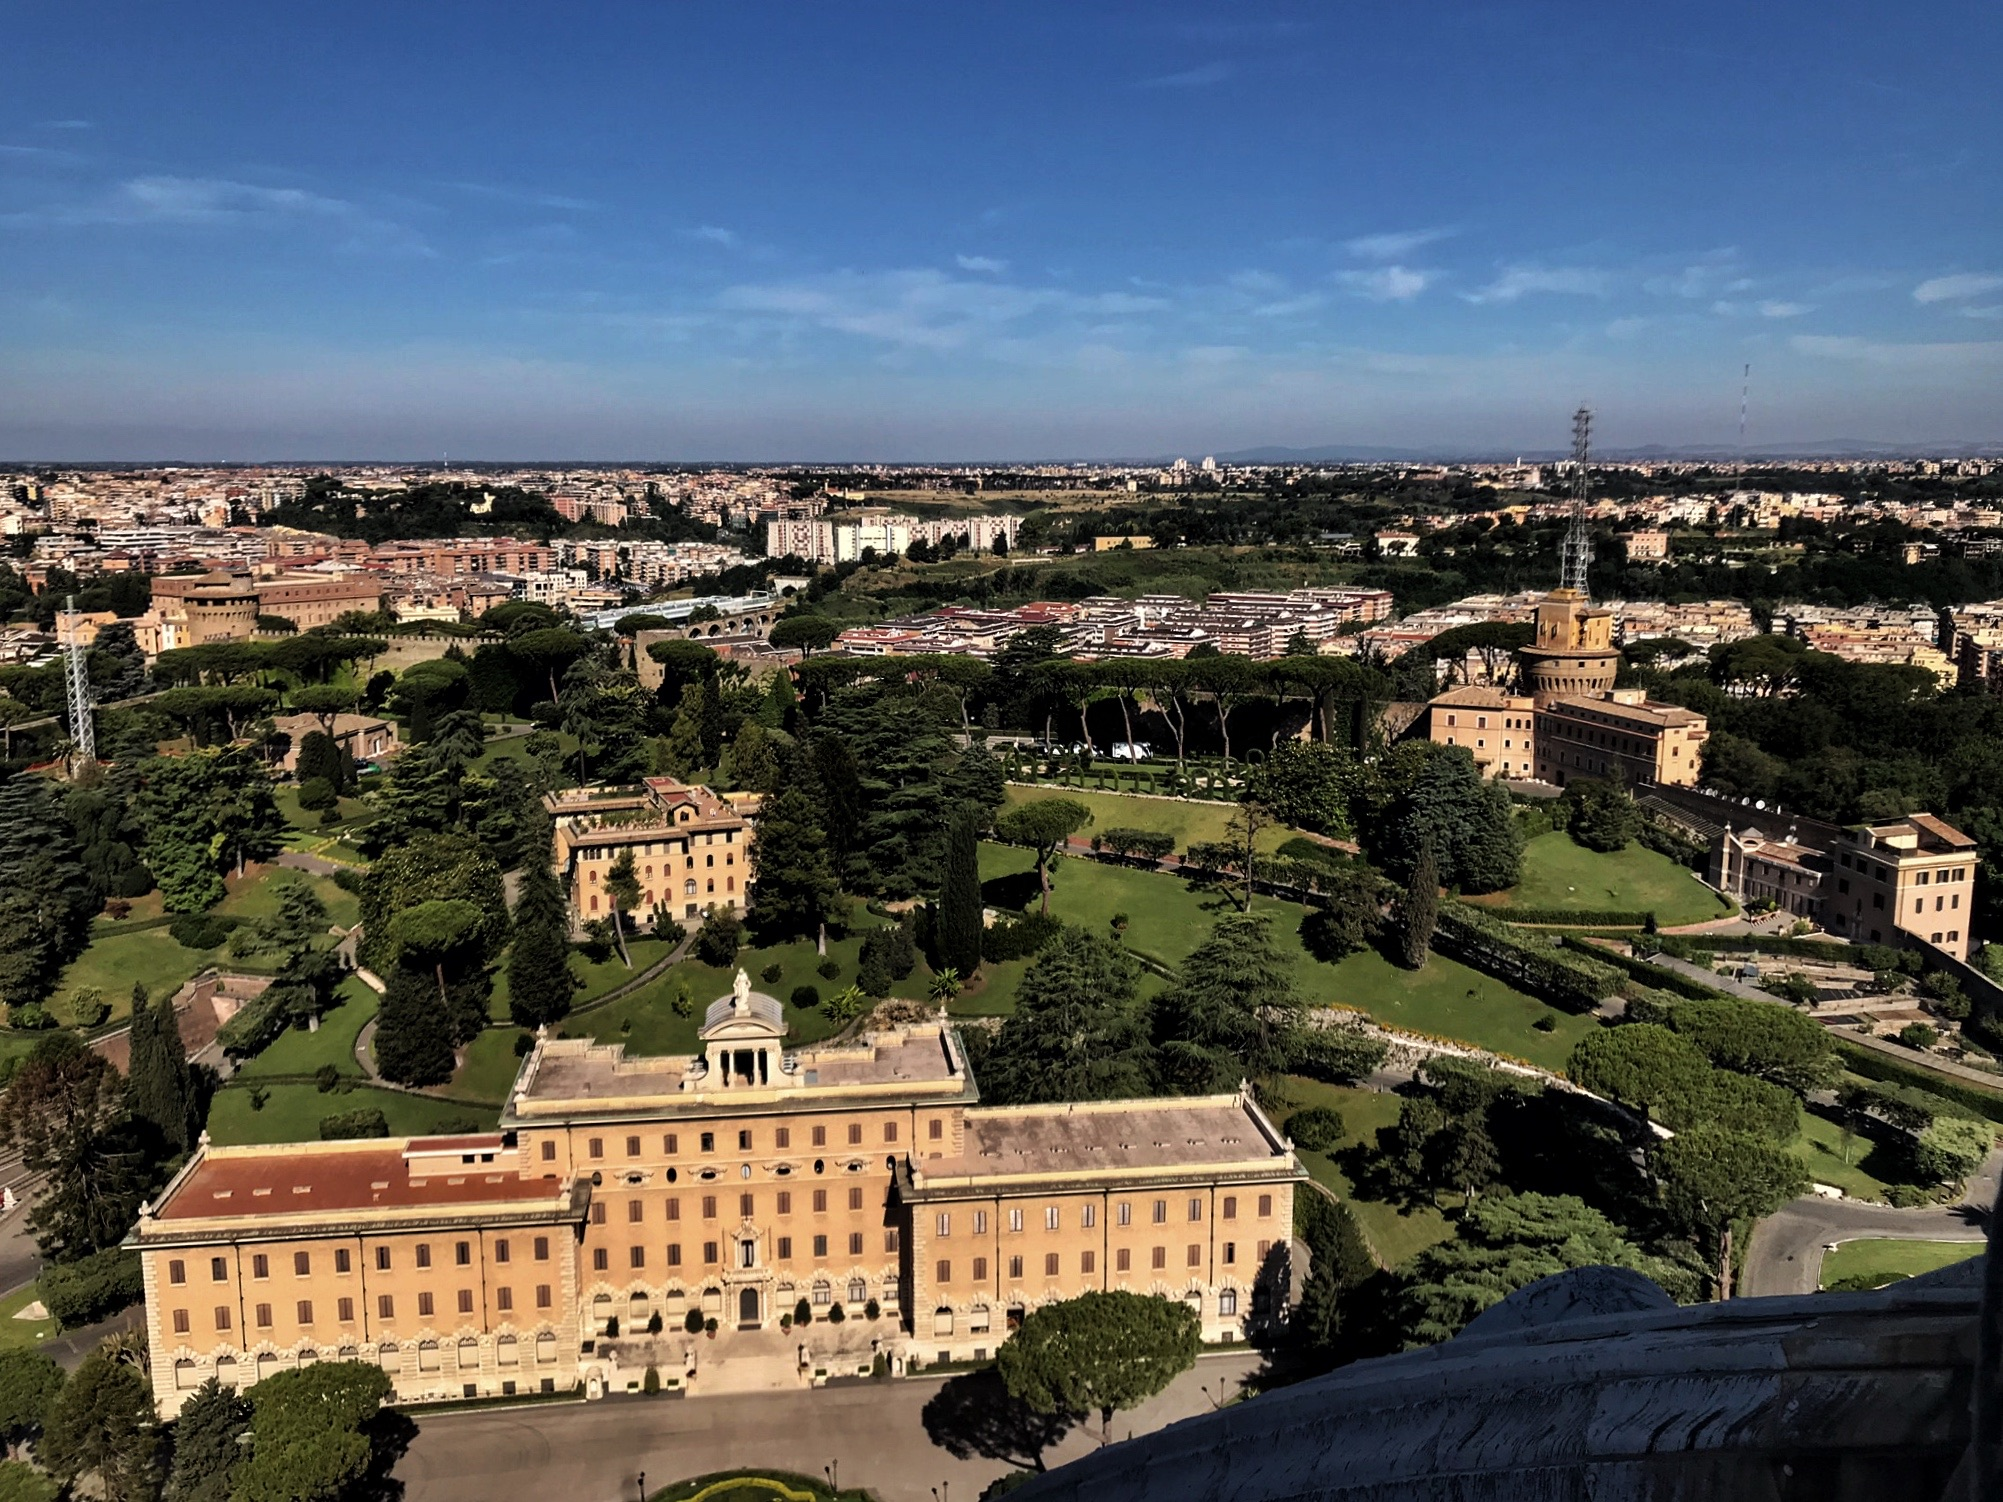 You can see all of Rome!